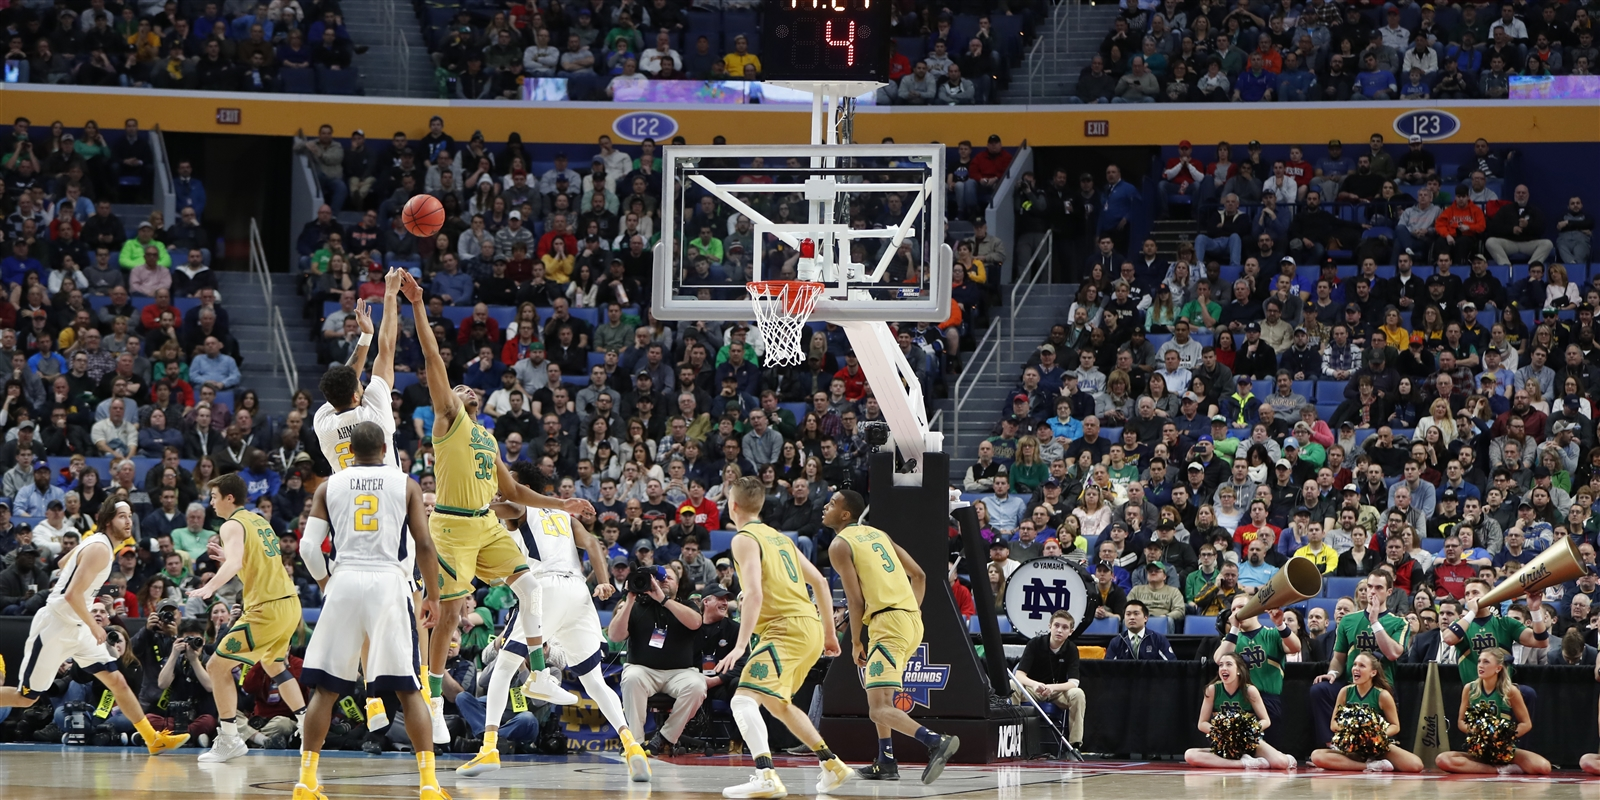 Notre Dame vs West Virginia during first half action of the second round of the 2017 NCAA Men's Basketball Tournament at the KeyBank Center on Saturday, March 18, 2017.